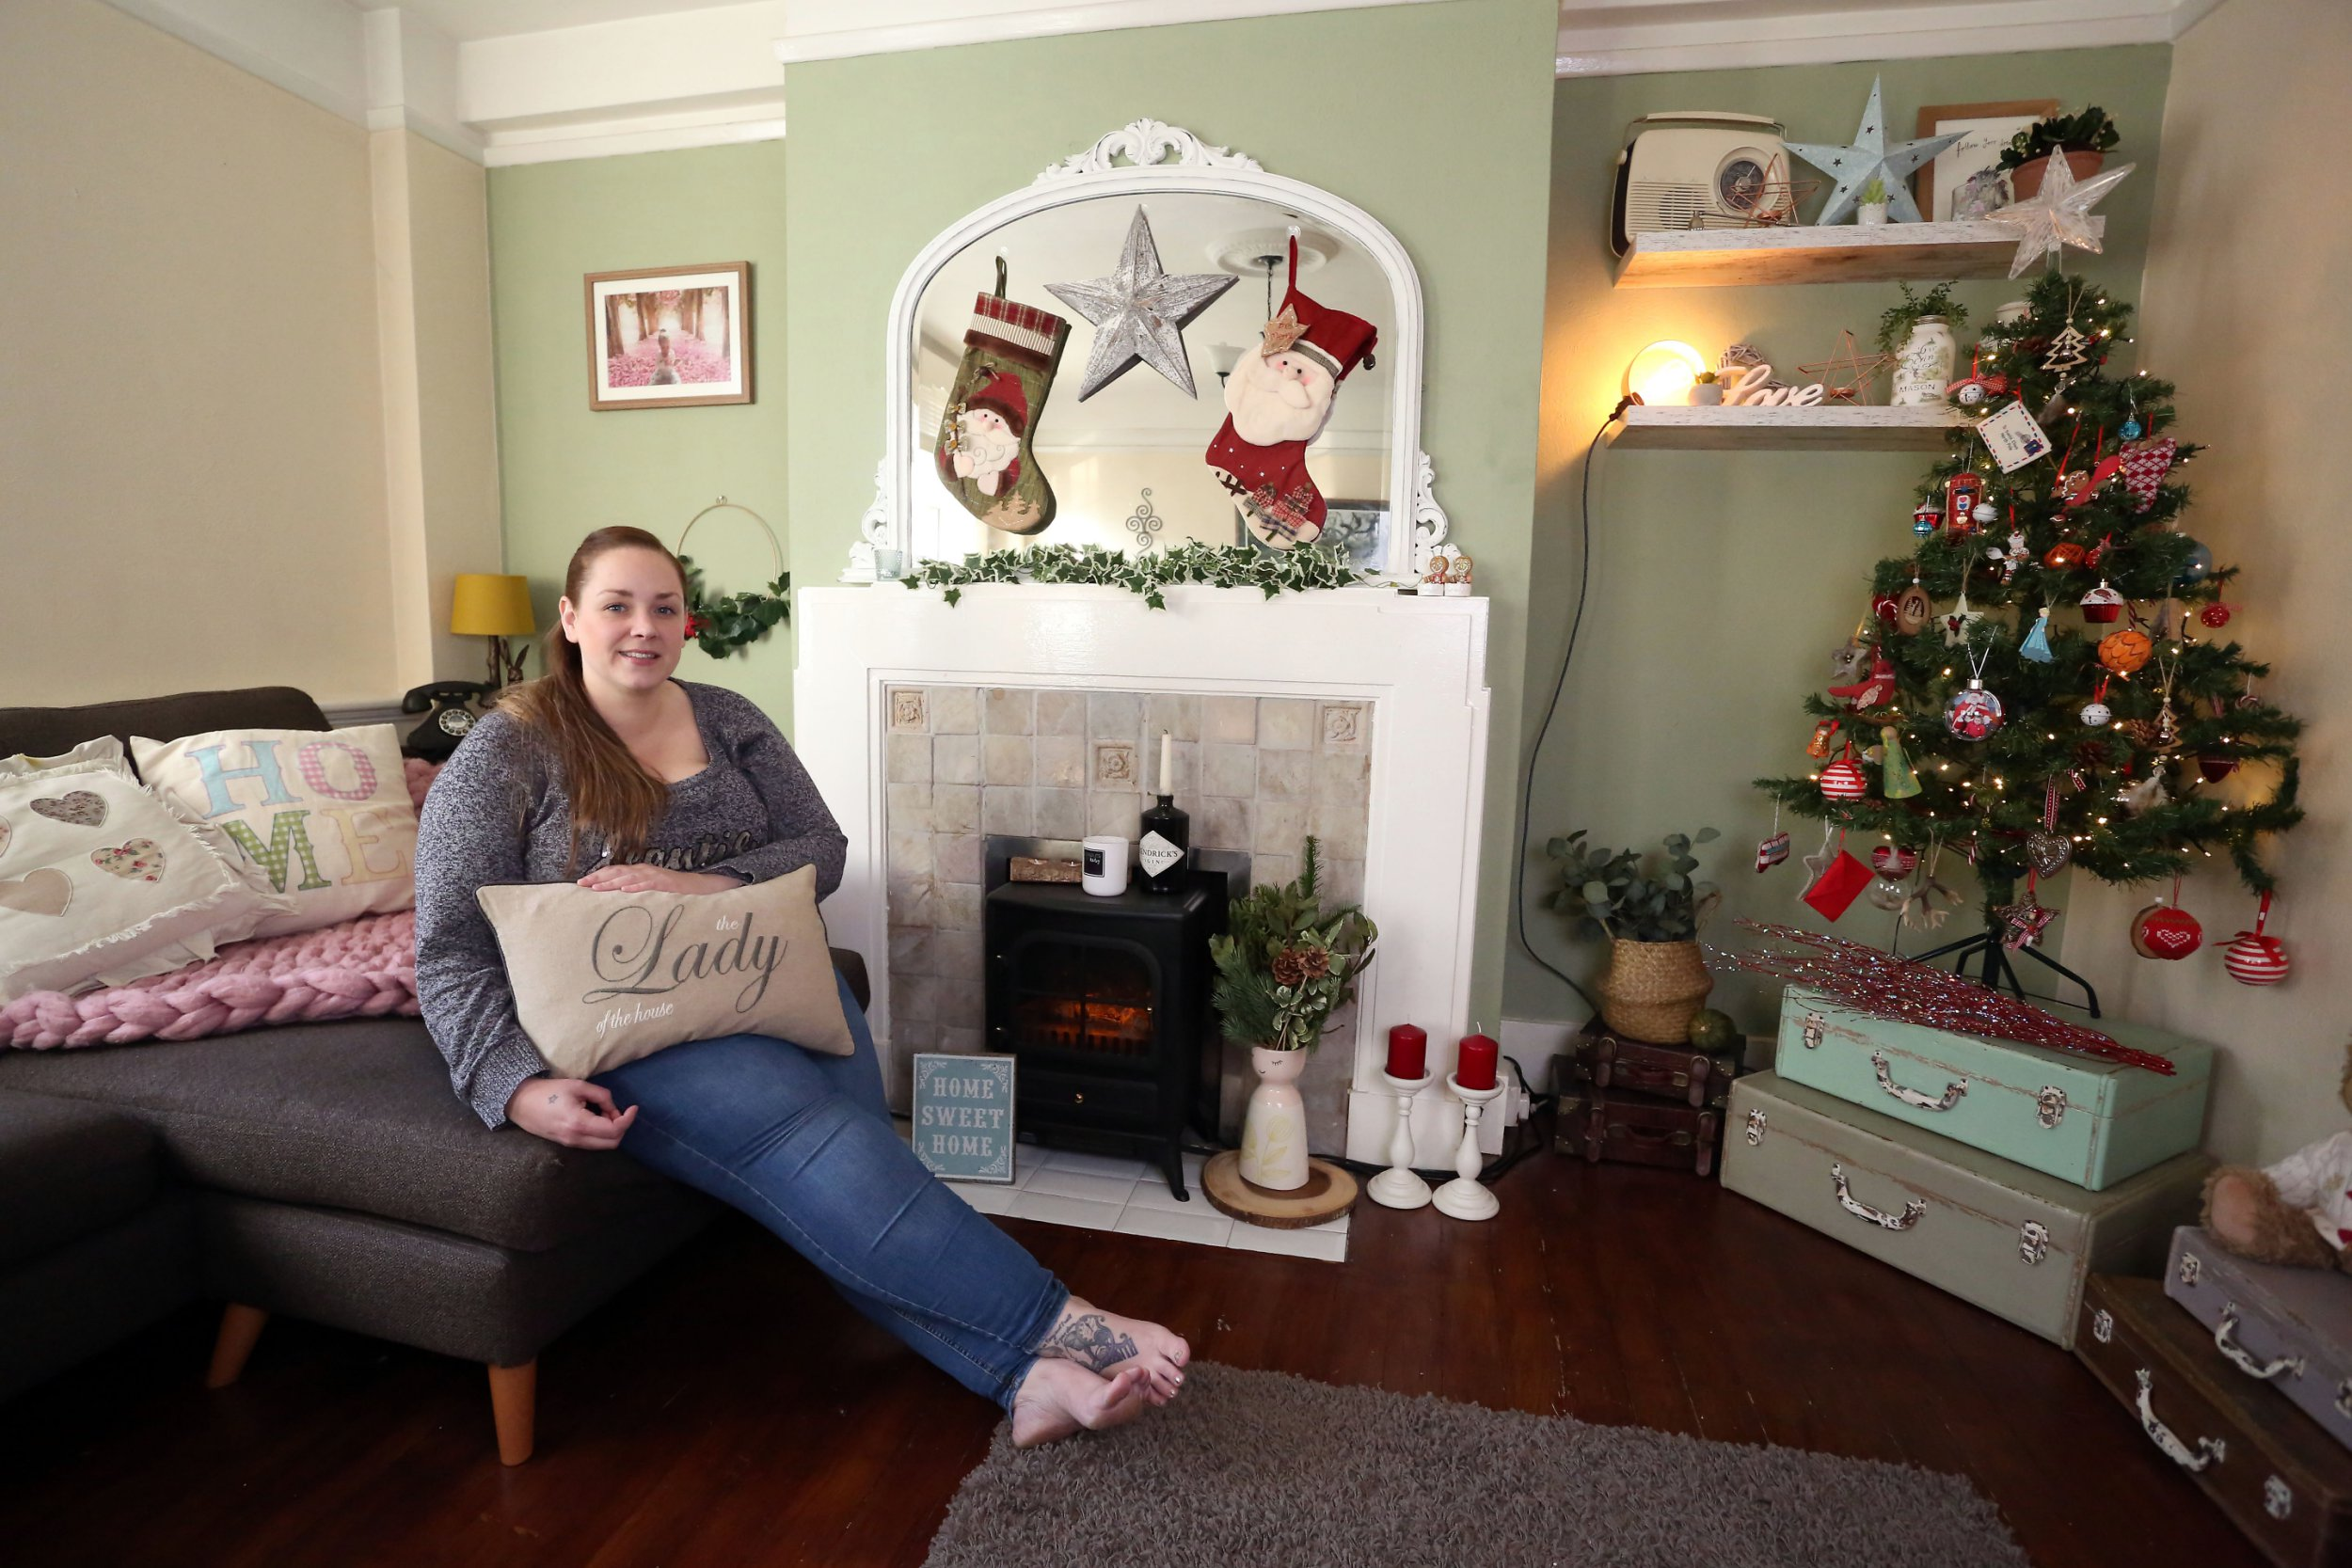 LONDON, UNITED KINGDOM, DECEMBER 17TH 2018. WHAT I RENT: STREATHAM HILL Tenant Carlie Line pictured in the living room of her two bedroomed flat in Streatham Hill, London, 17th December 2018. Carlie pays ?1500 a month not including bills. Photo credit: Susannah Ireland